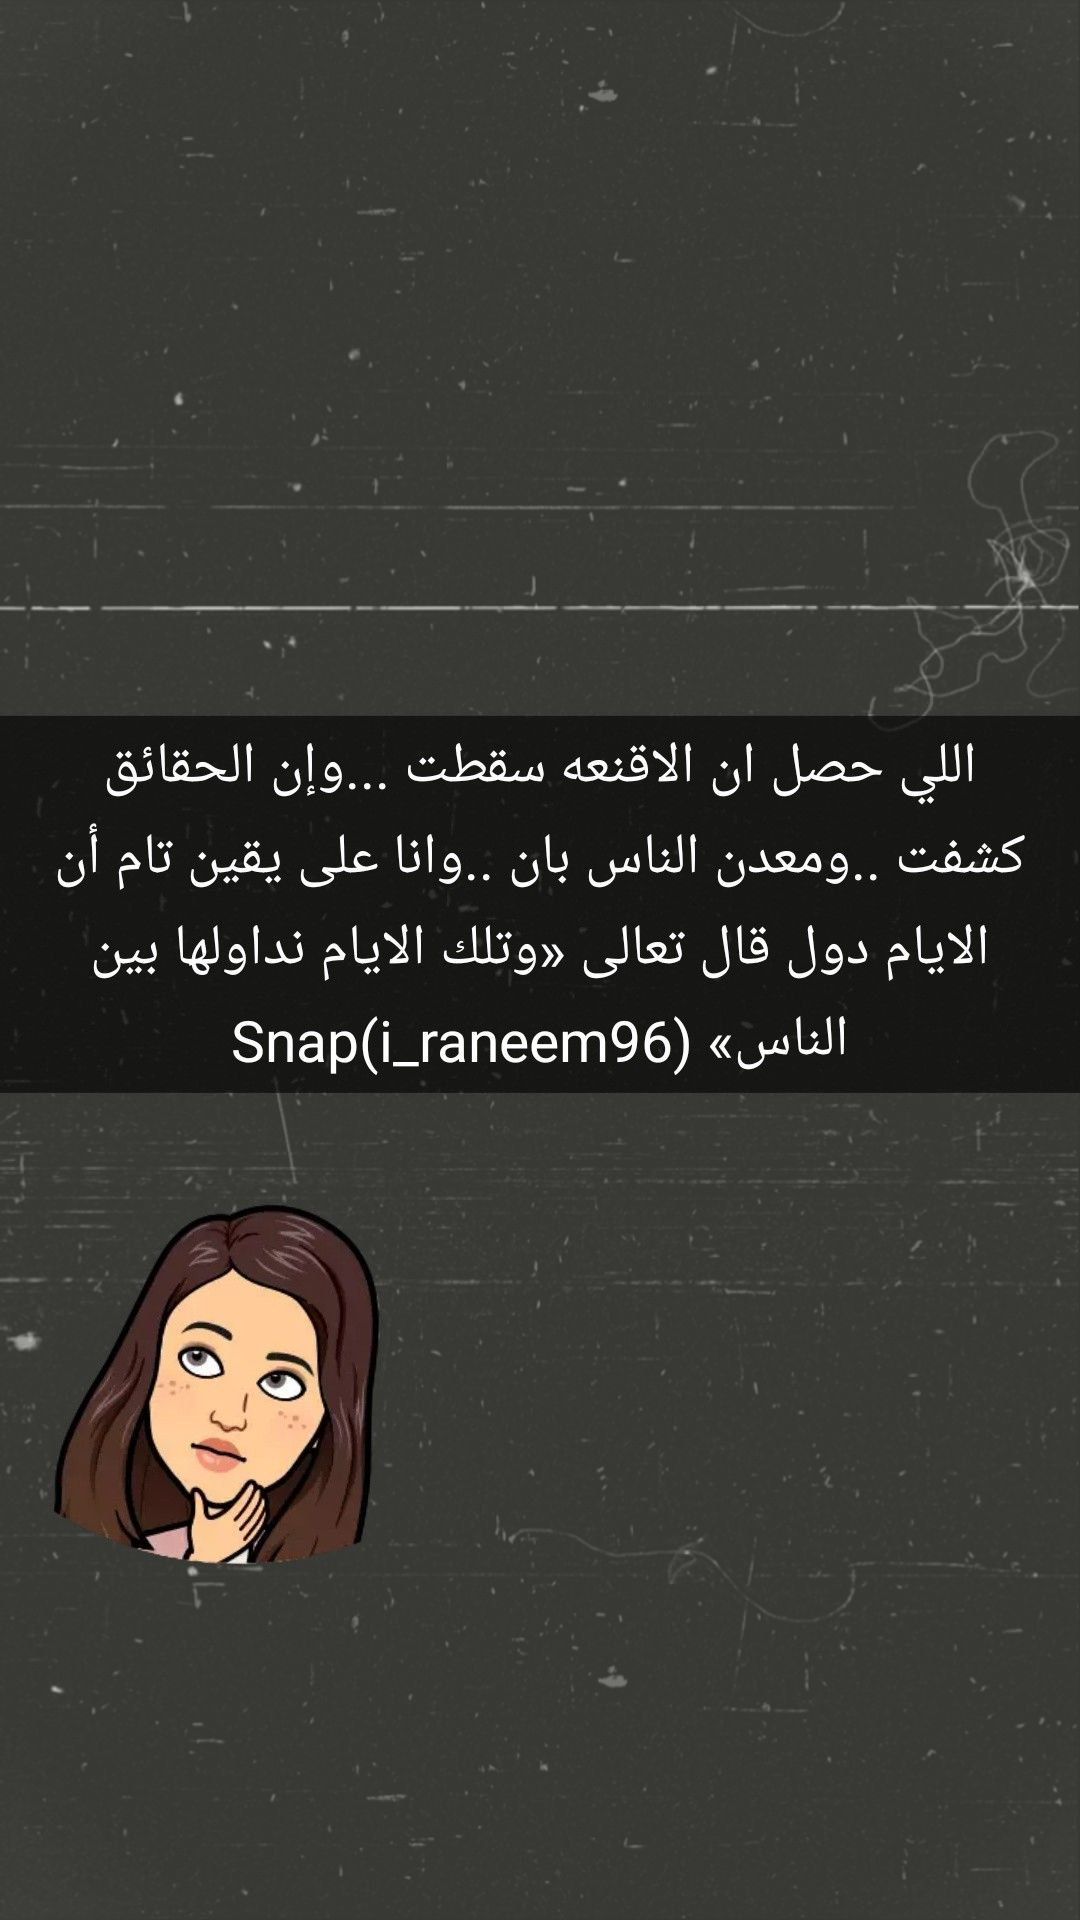 Pin By Raneem On قواعد الحياه Life Rules Life Rules Movie Posters Life